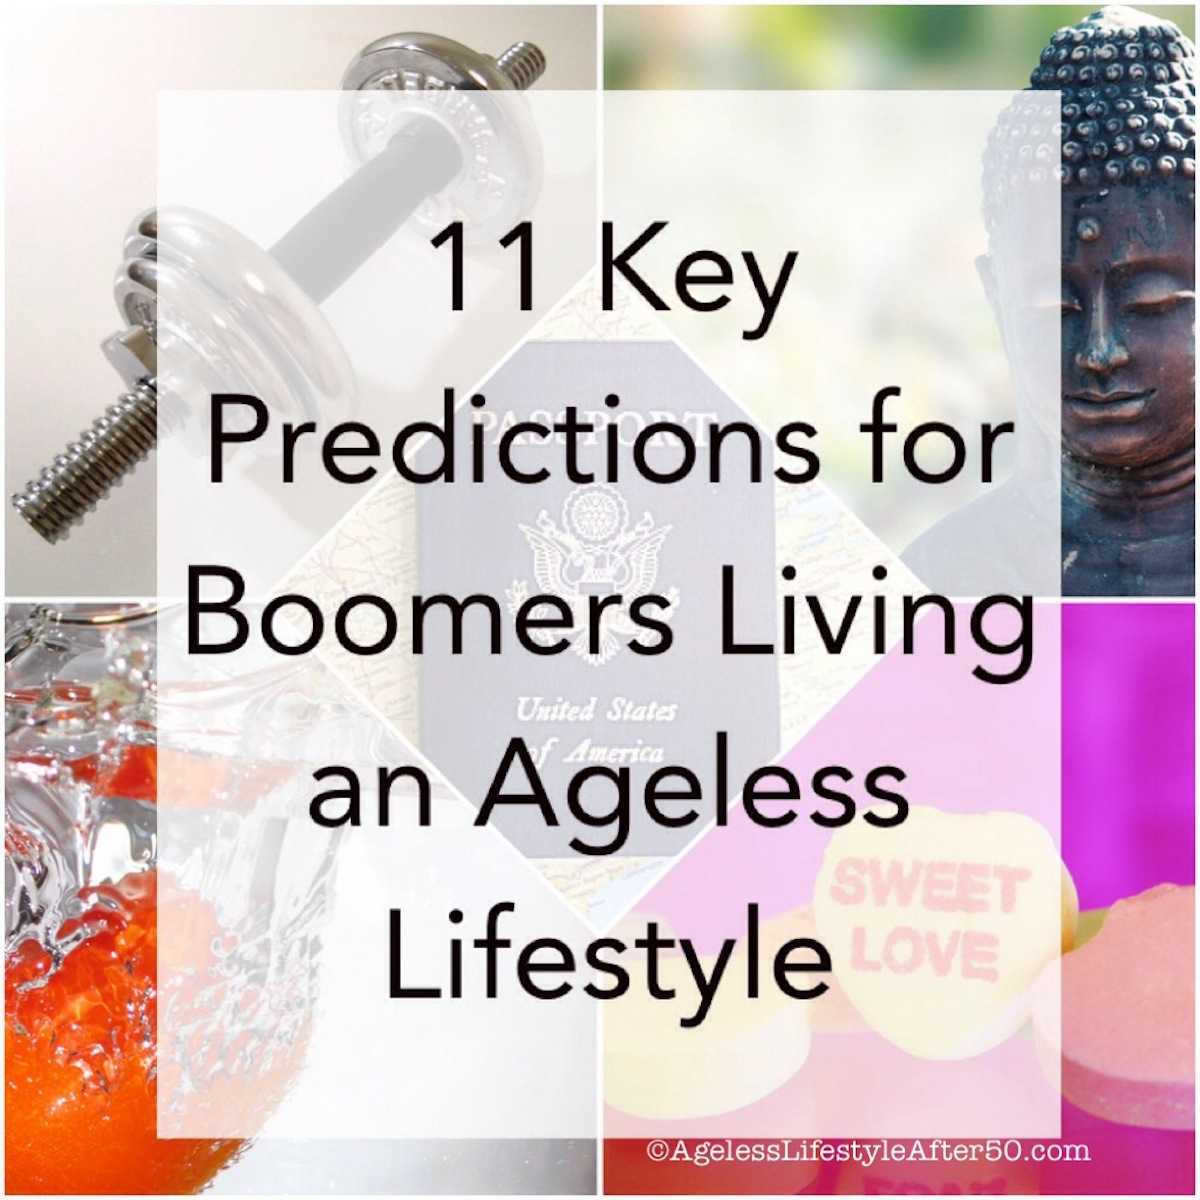 11 Key Boomer Predictions for Living an Ageless Lifestyle